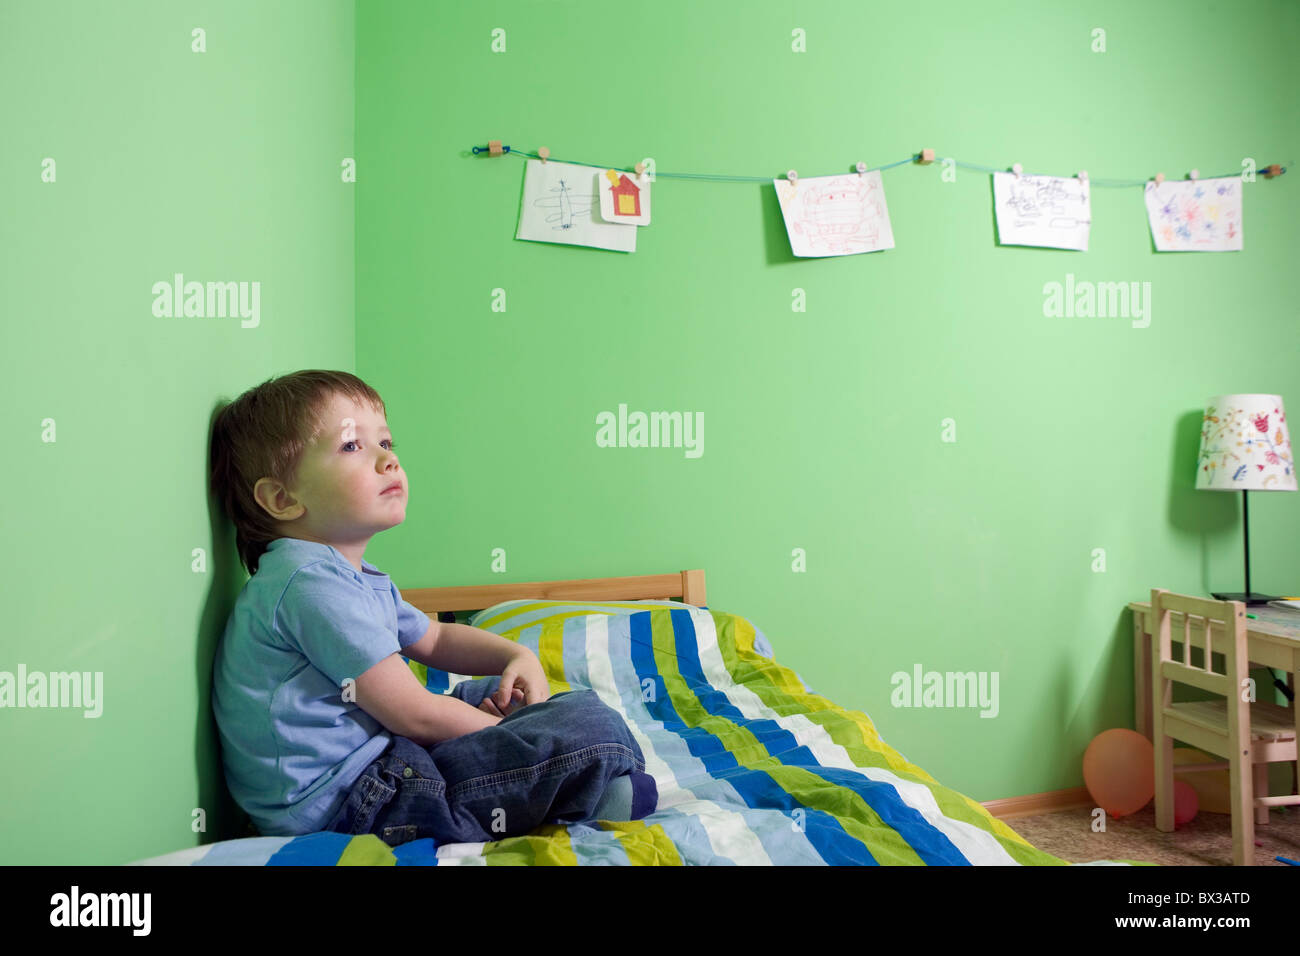 young boy sitting on bed in children´s room - Stock Image